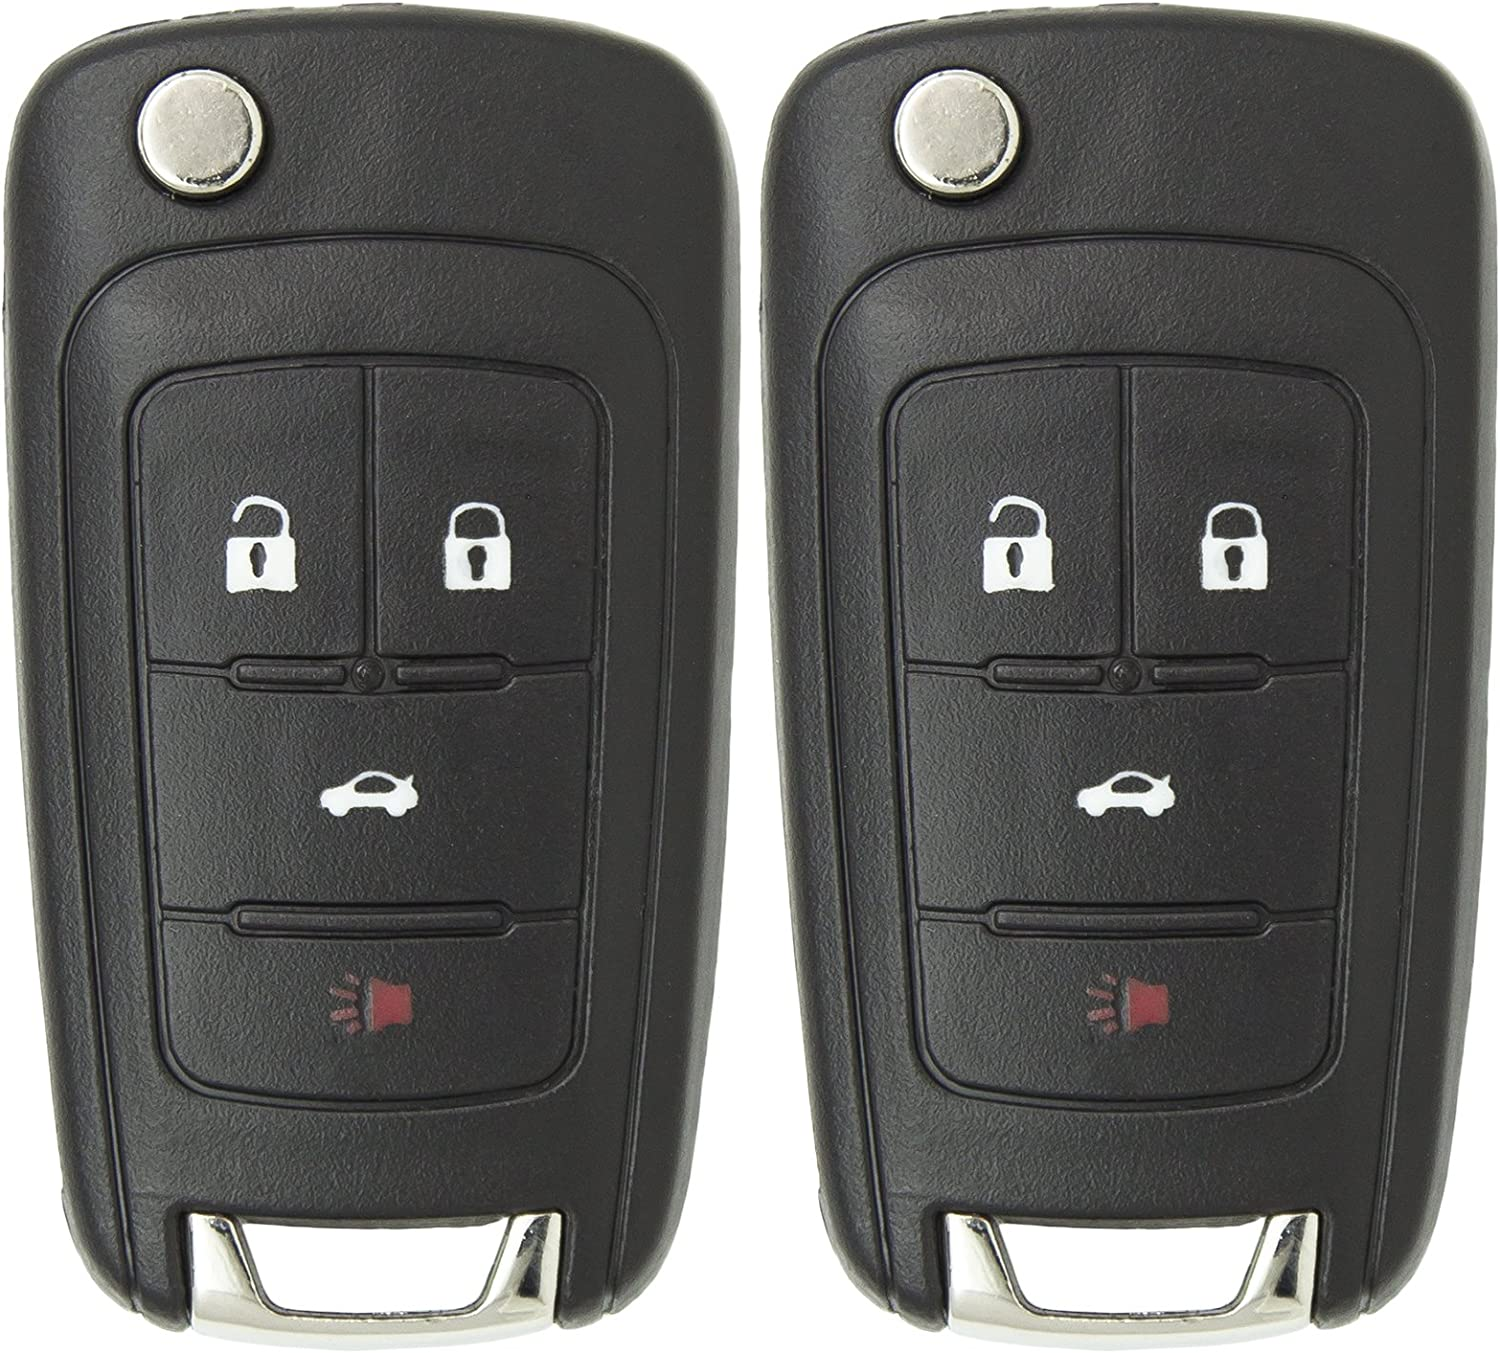 Keyless2Go New Keyless Remote 4 Button Flip Car Key Fob for Equinox Verano Sonic and Other Vehicles That Use FCC OHT01060512 2 Pack